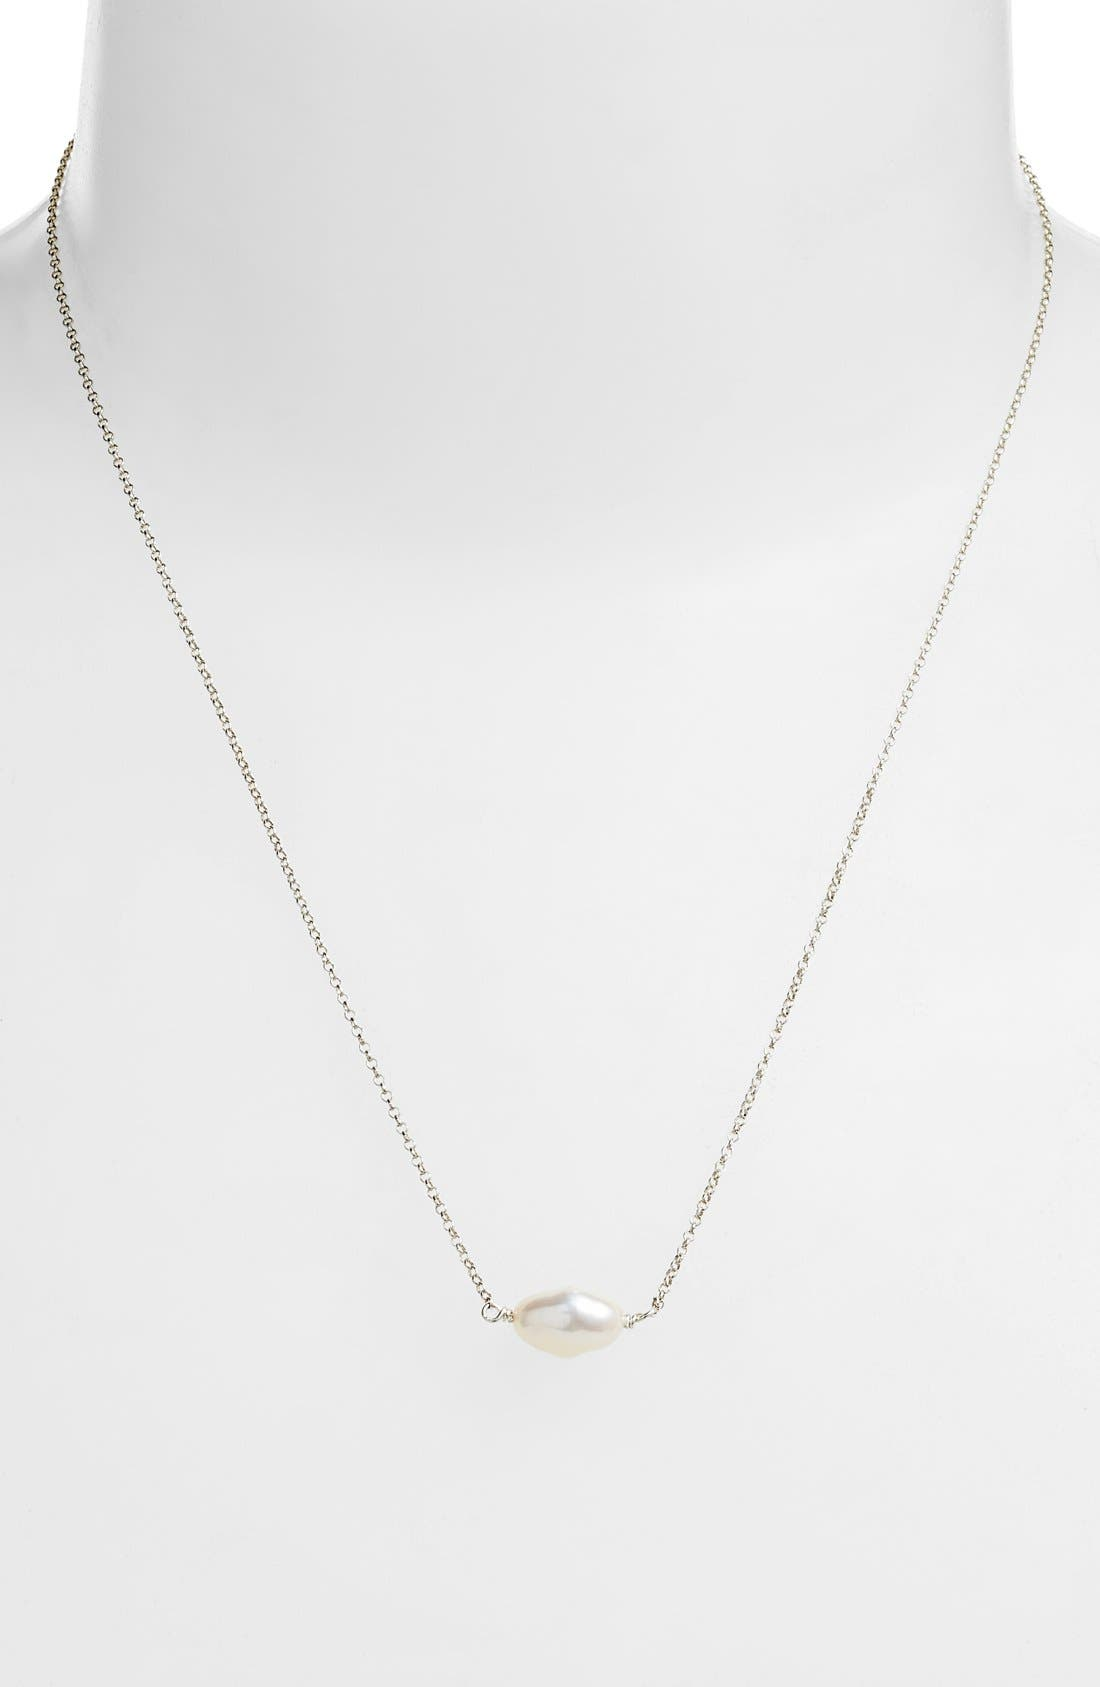 Keshi Cultured Pearl Necklace,                             Alternate thumbnail 2, color,                             STERLING WHITE PEARL